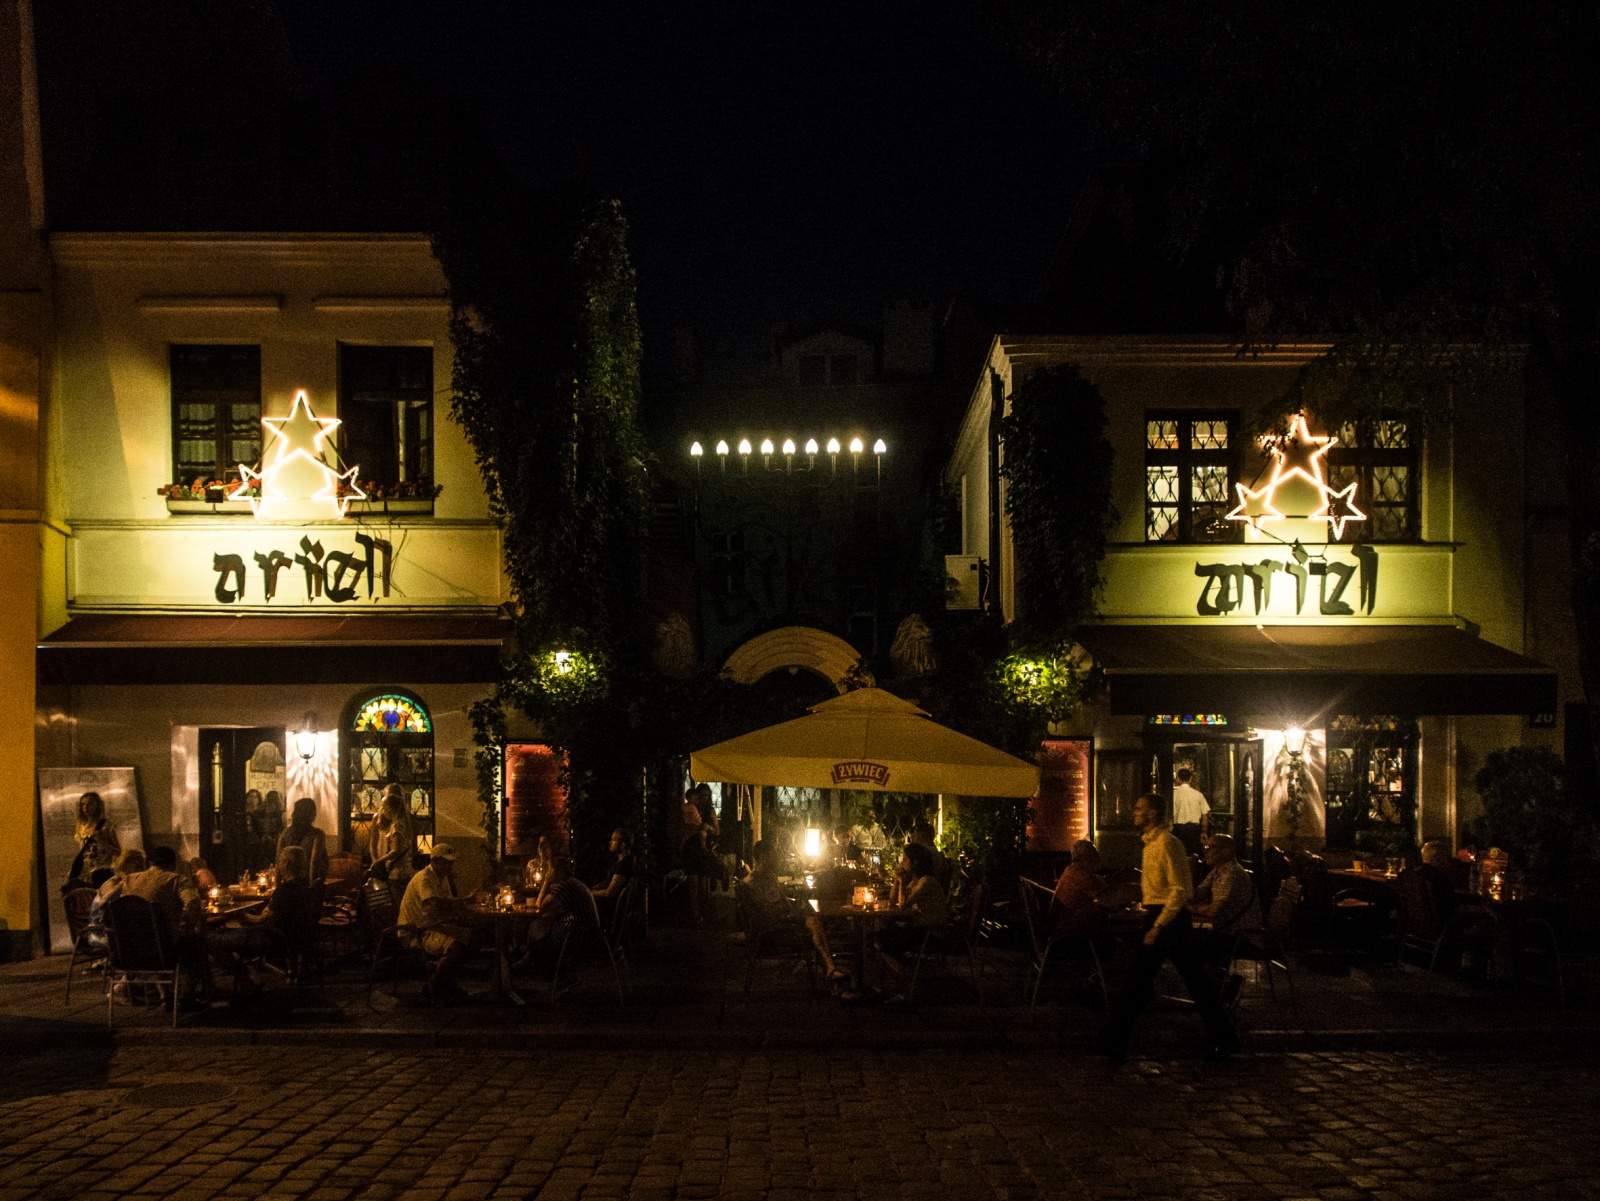 KAZIMIERZ BY NIGHT, POLAND - AUGUST 2015